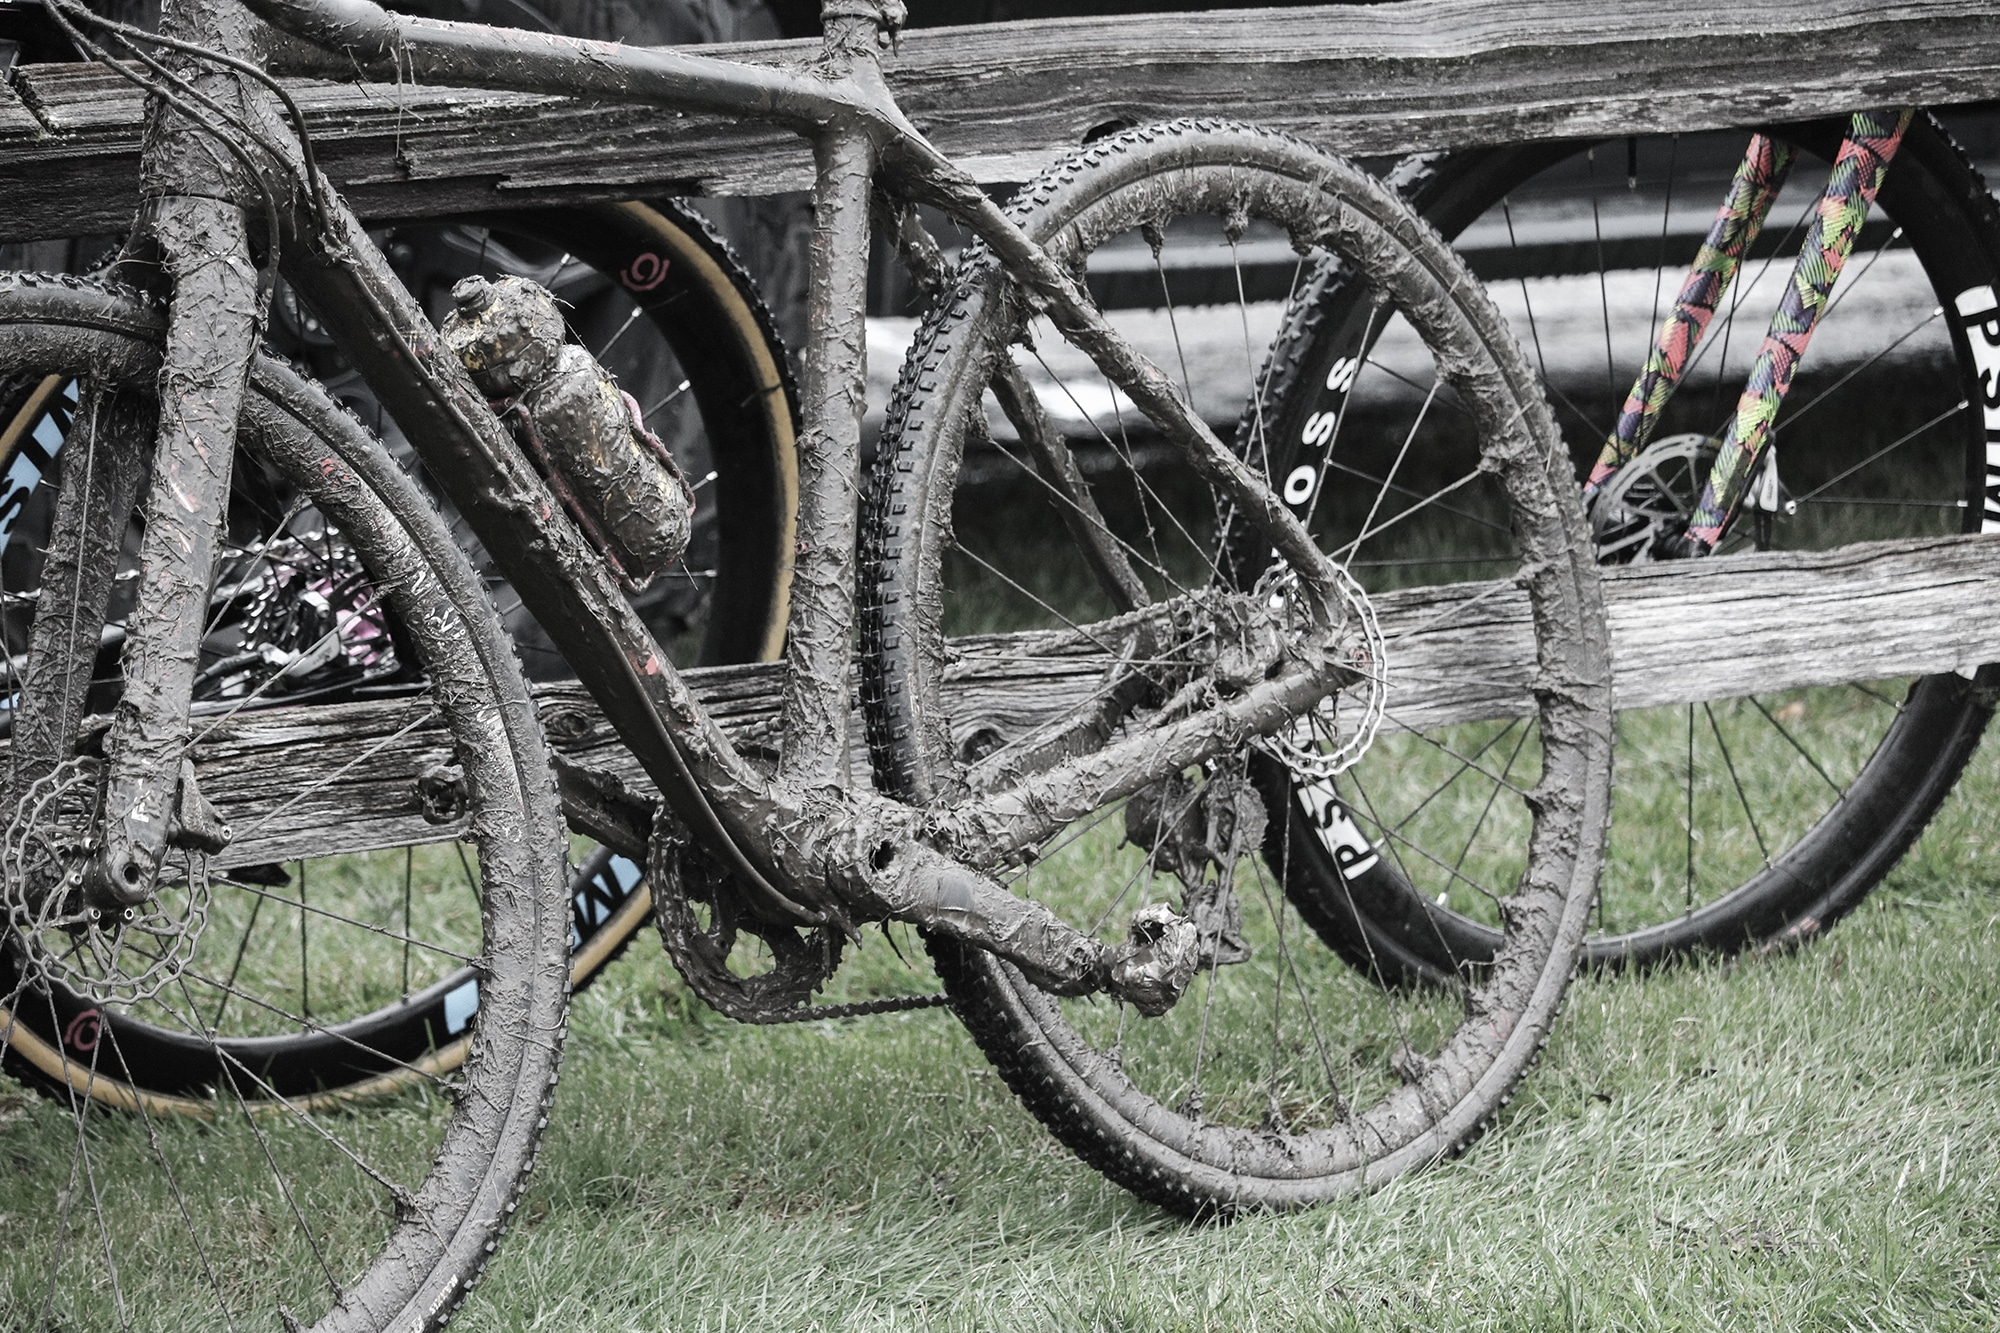 Bike covered in mud